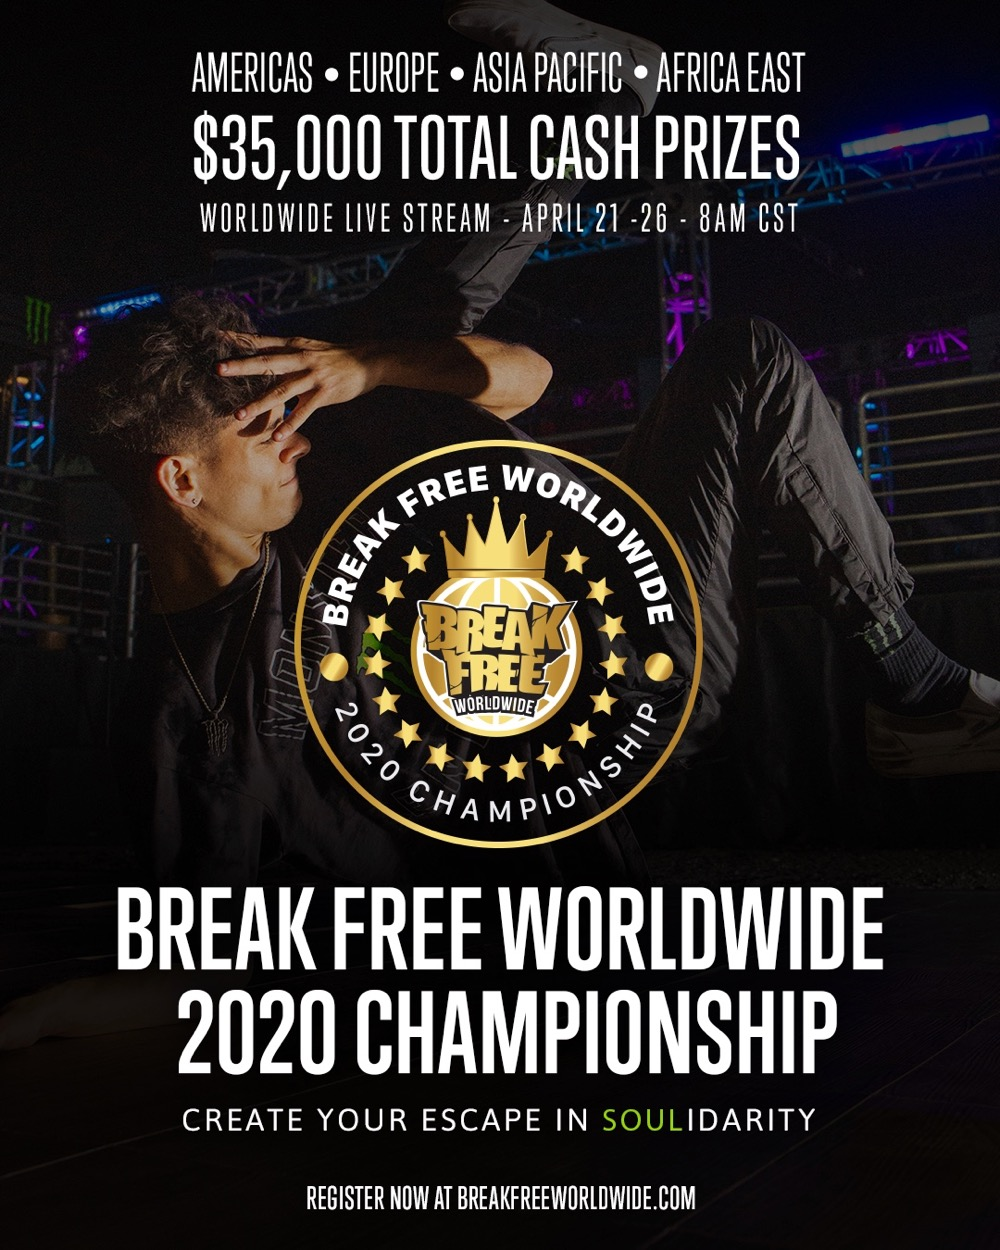 Break Free Worldwide 2020 Championship Poster